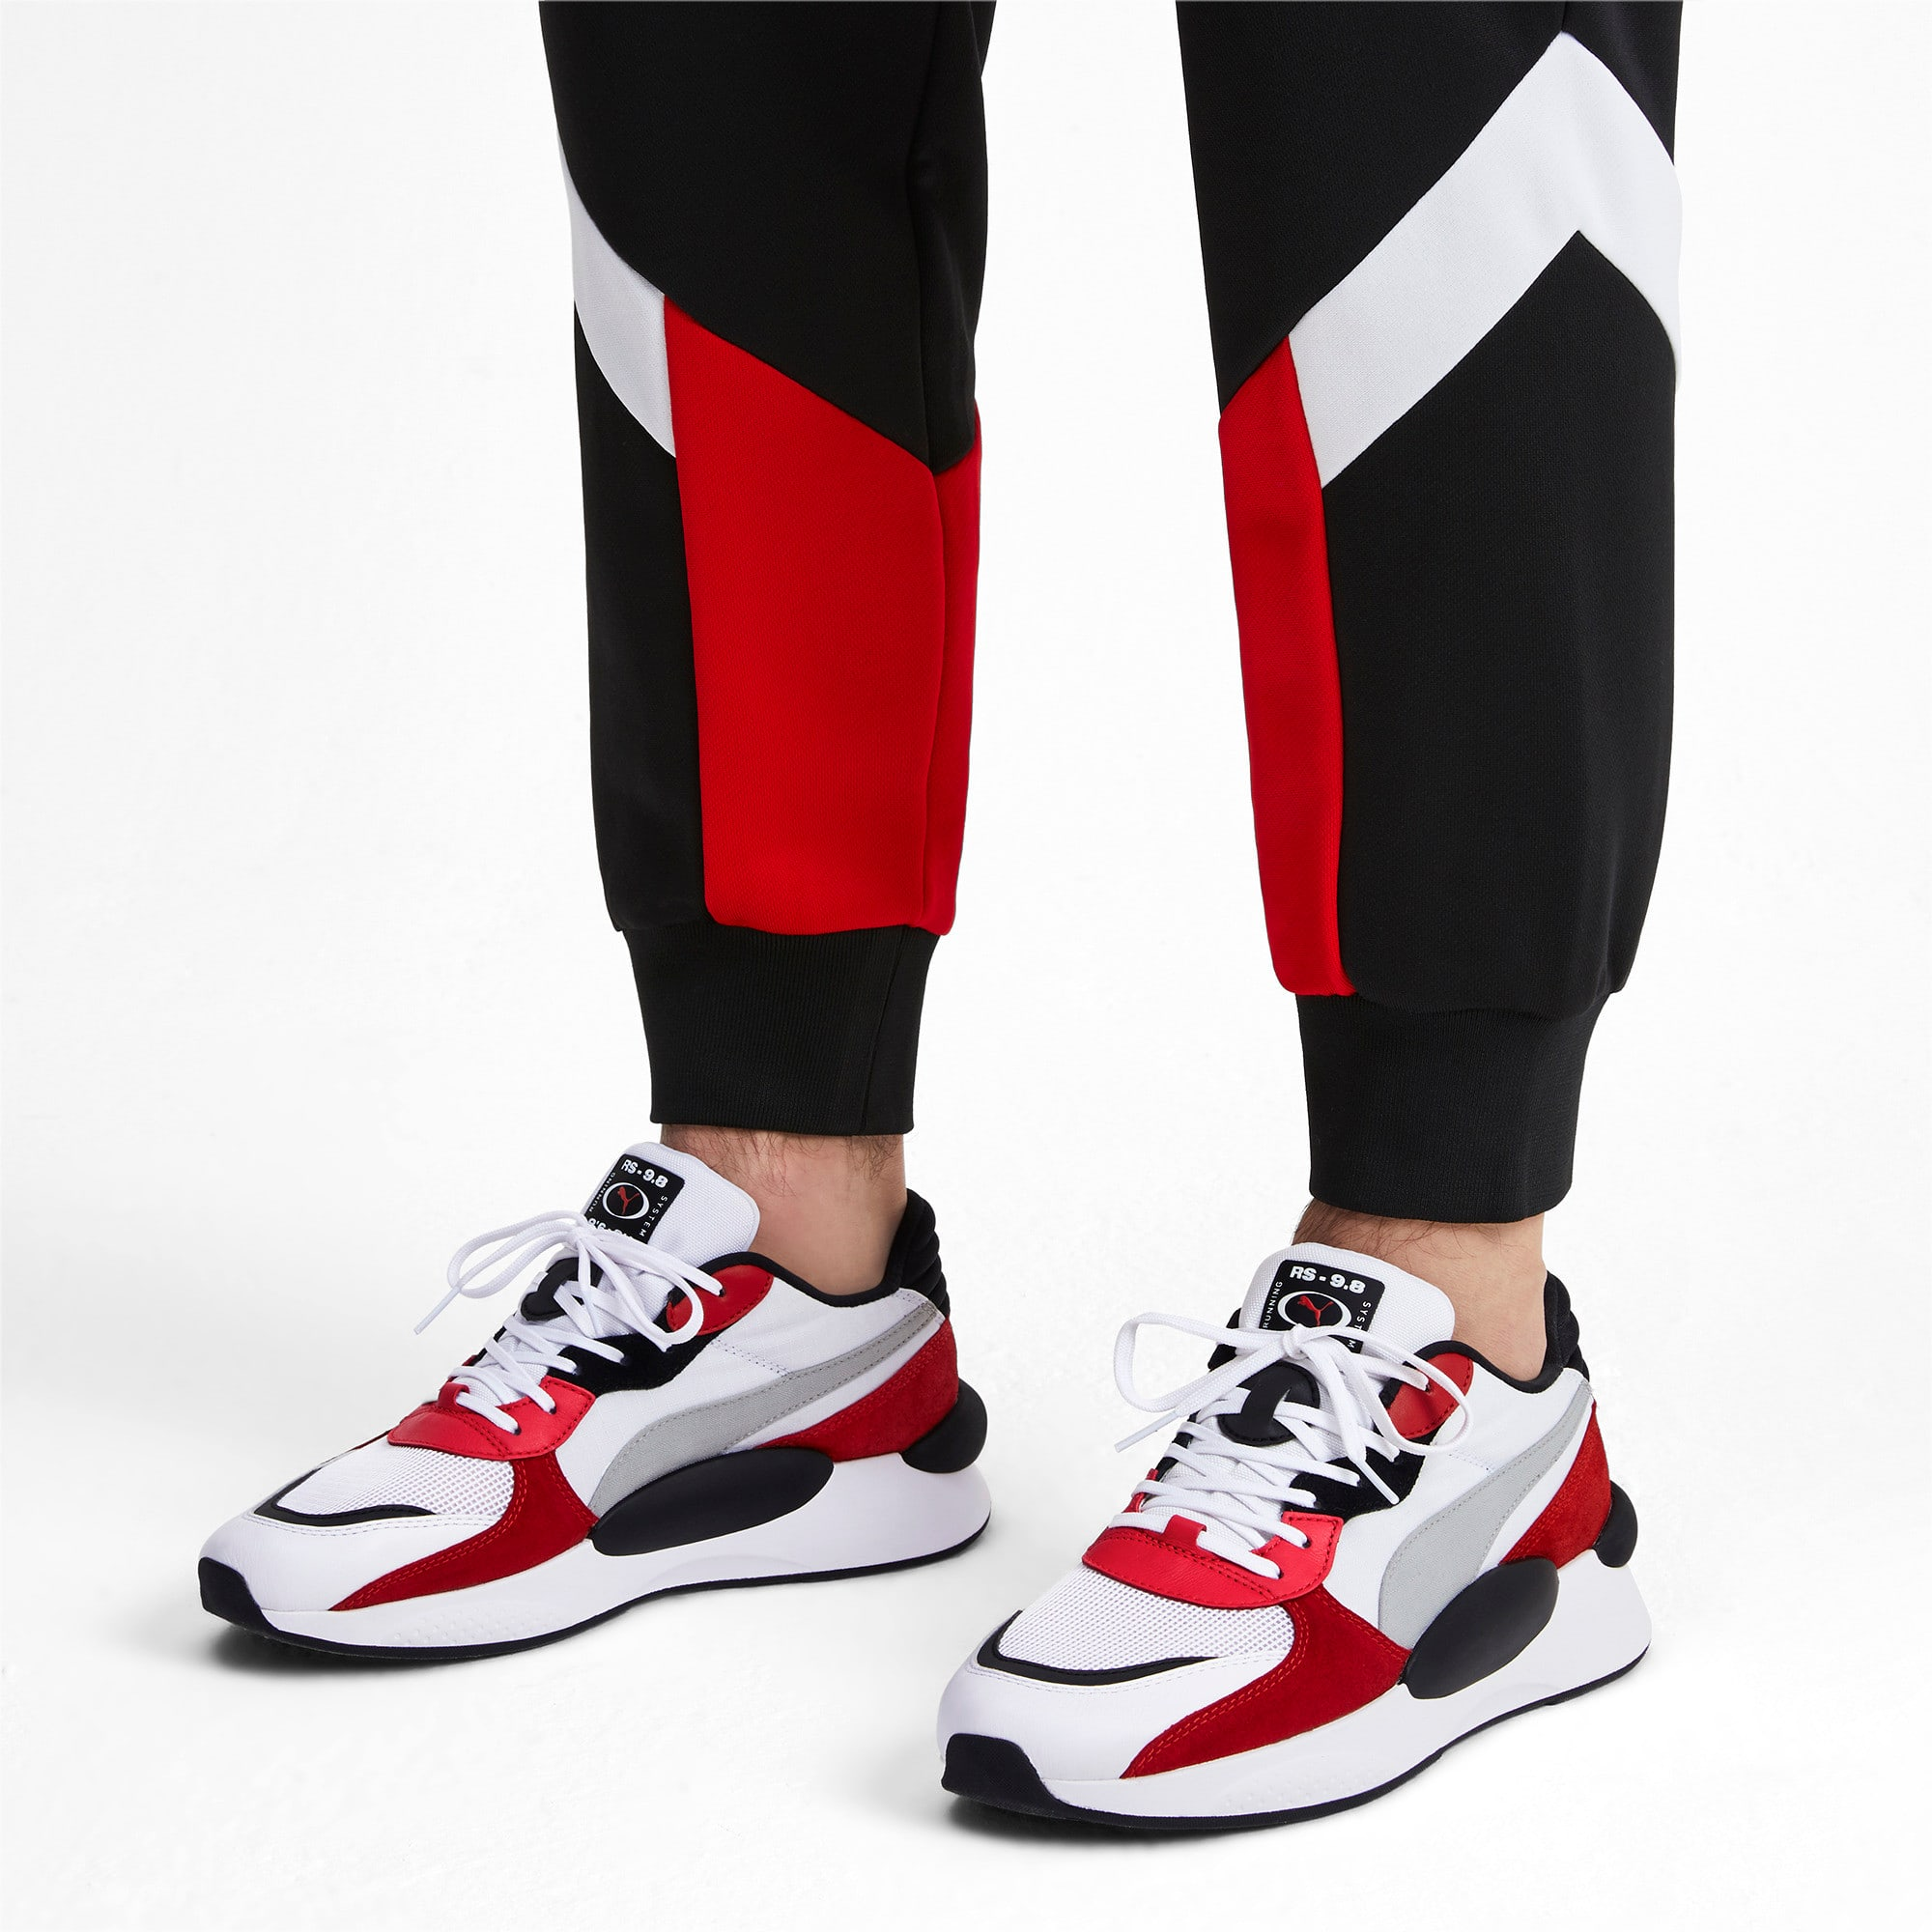 Thumbnail 2 of RS 9.8 Space Sneakers, Puma White-High Risk Red, medium